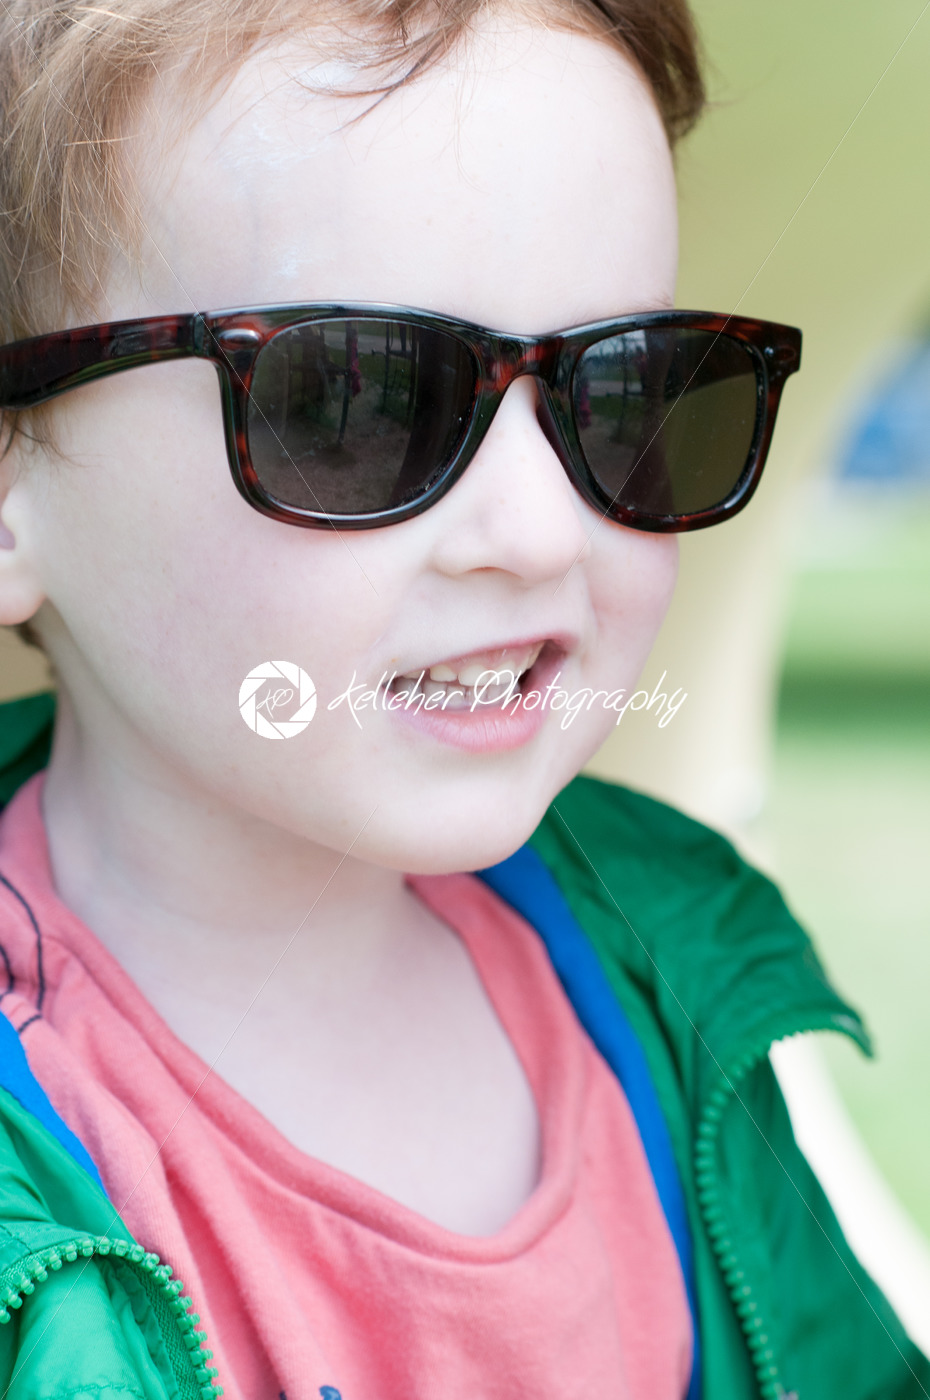 Happy little boy is swinging on see-saw wearing oversized sunglasses - Kelleher Photography Store